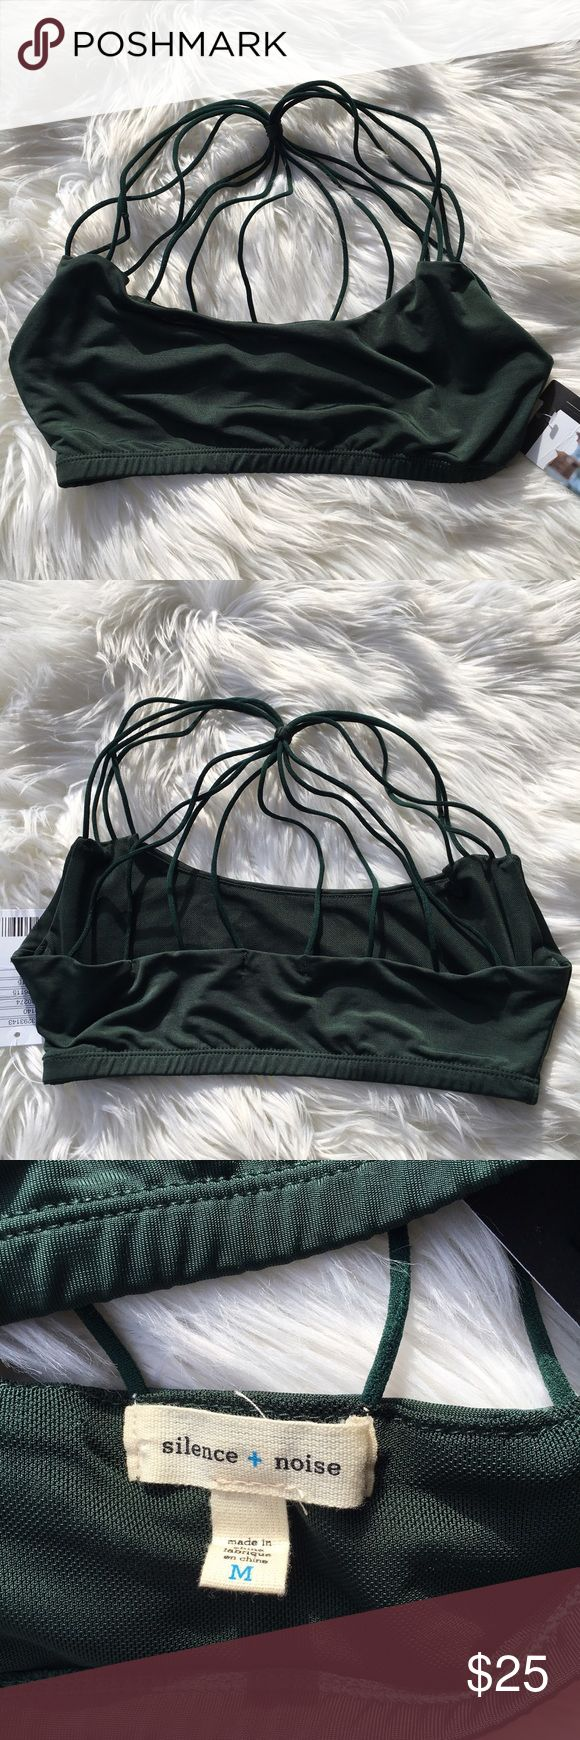 Silence + noise see thru bra From urban outfitters. Brant new with tags! No flaws. Material is see thru. It's a deep green color. Back strap accents are super cute. Size M. Questions? Open to offers. :) Urban Outfitters Intimates & Sleepwear Bras